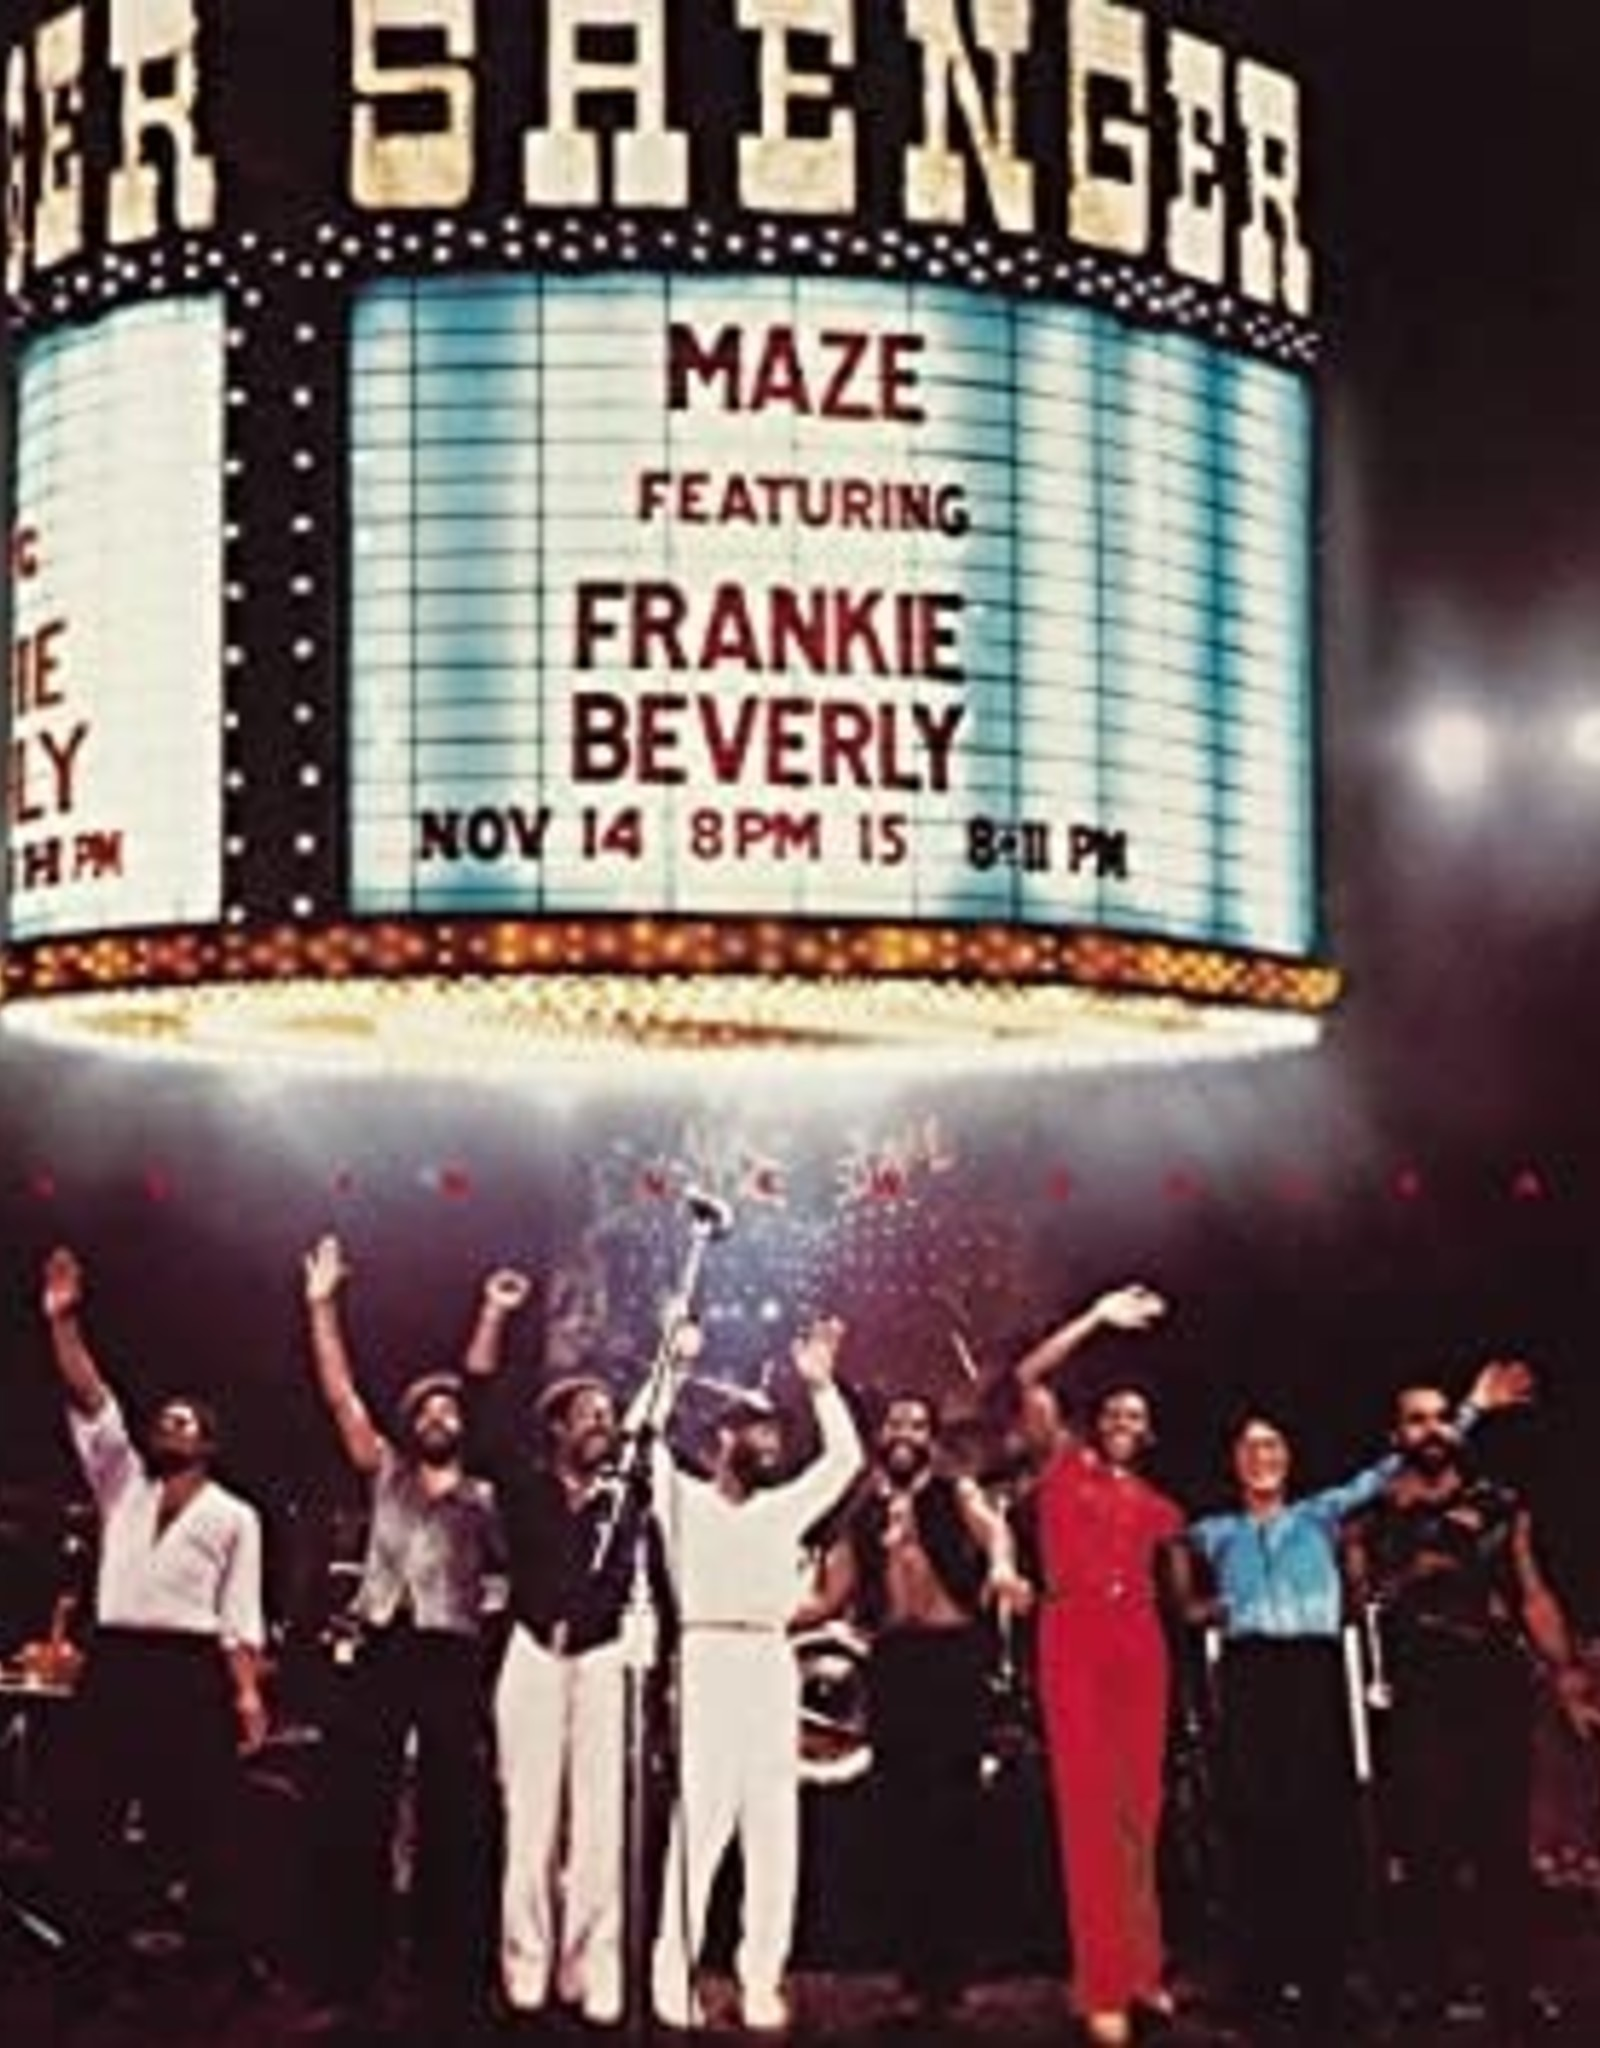 Maze Featuring Frankie Beverly - Live in New Orleans